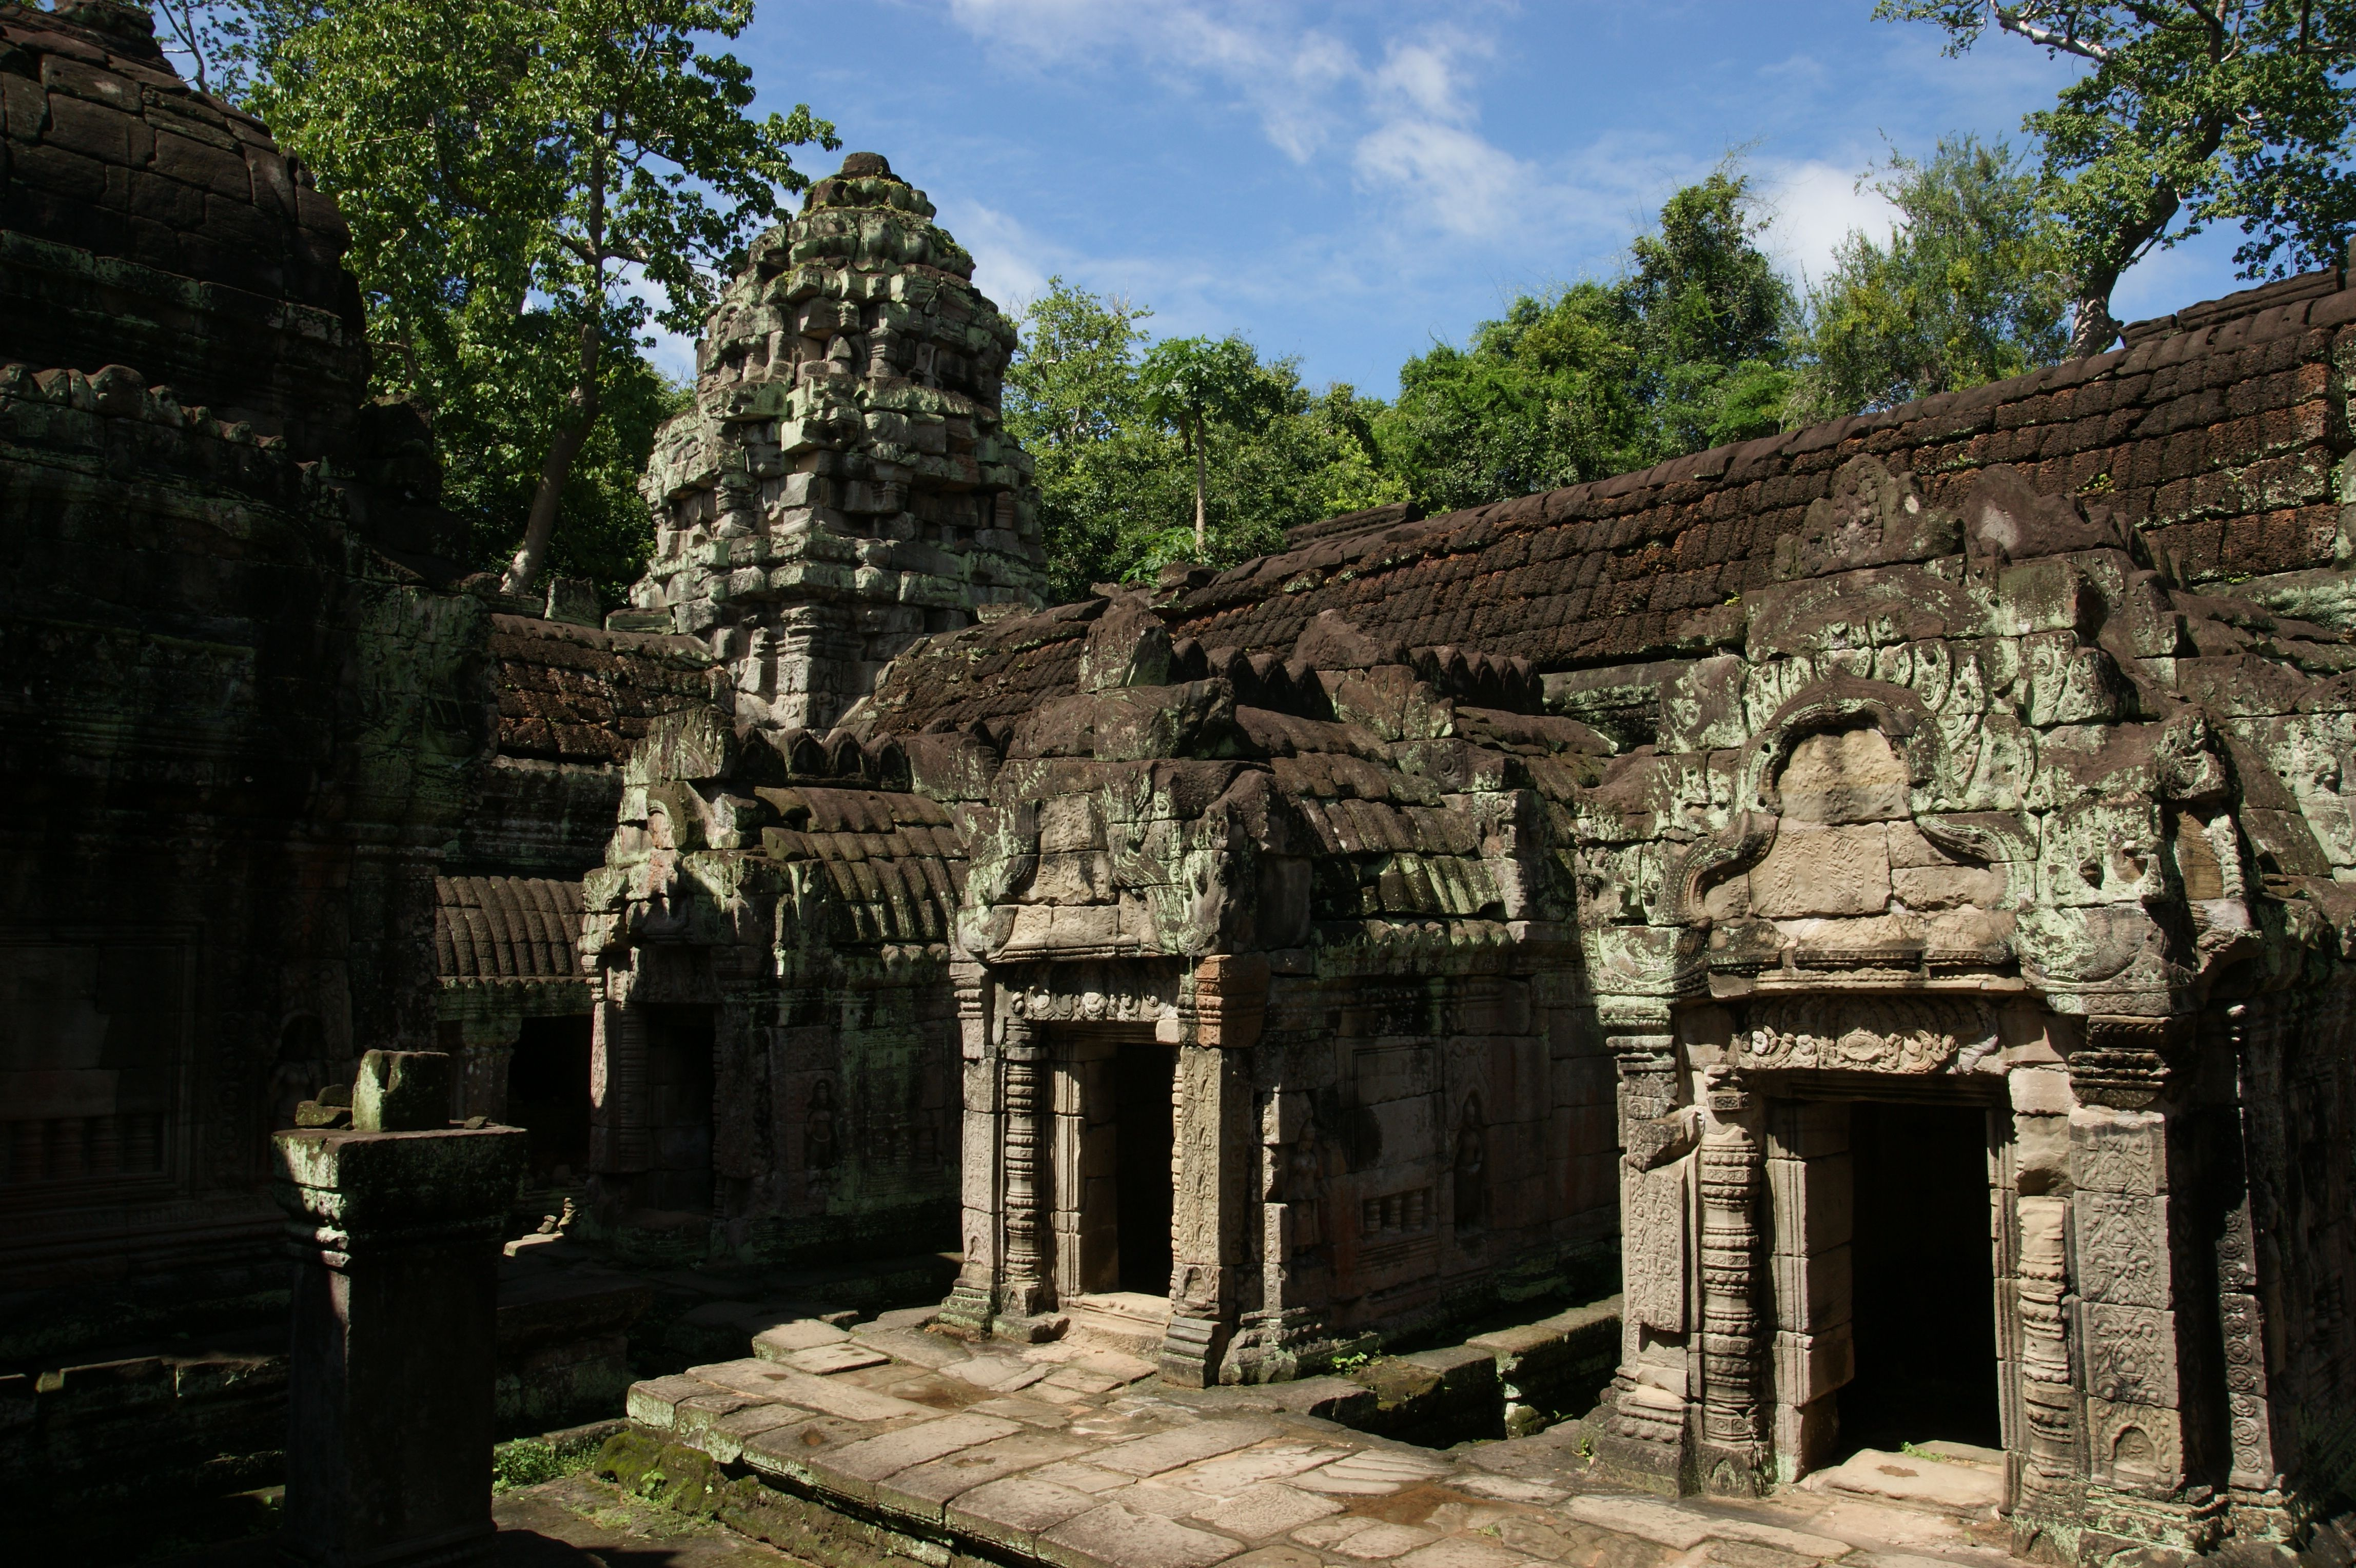 temple ruins | cambodian temple ruins | Pinterest | Temple ruins ...